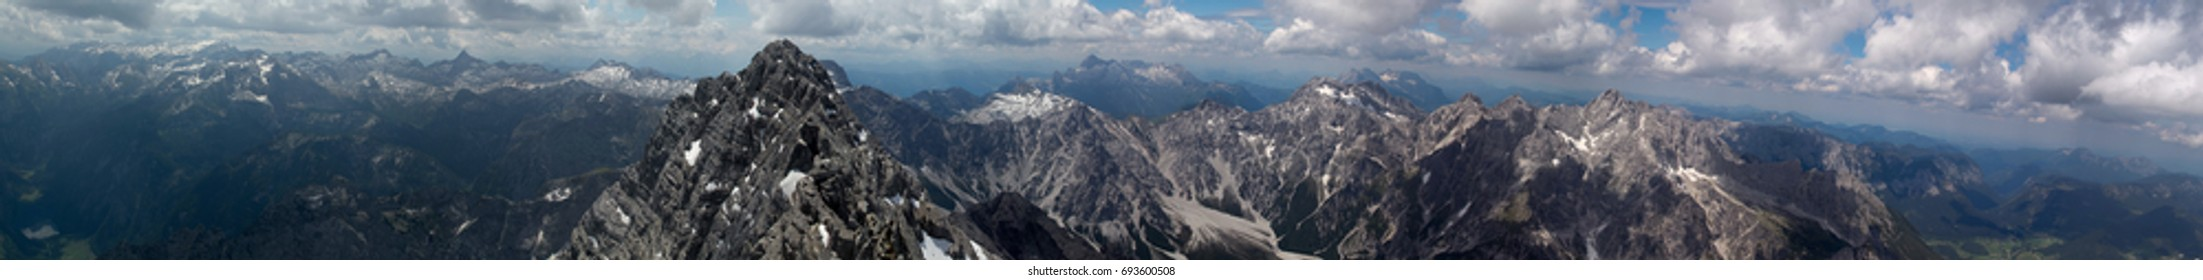 """Panorama view from the mid peak of the """"Watzmann"""" in the German Alps"""